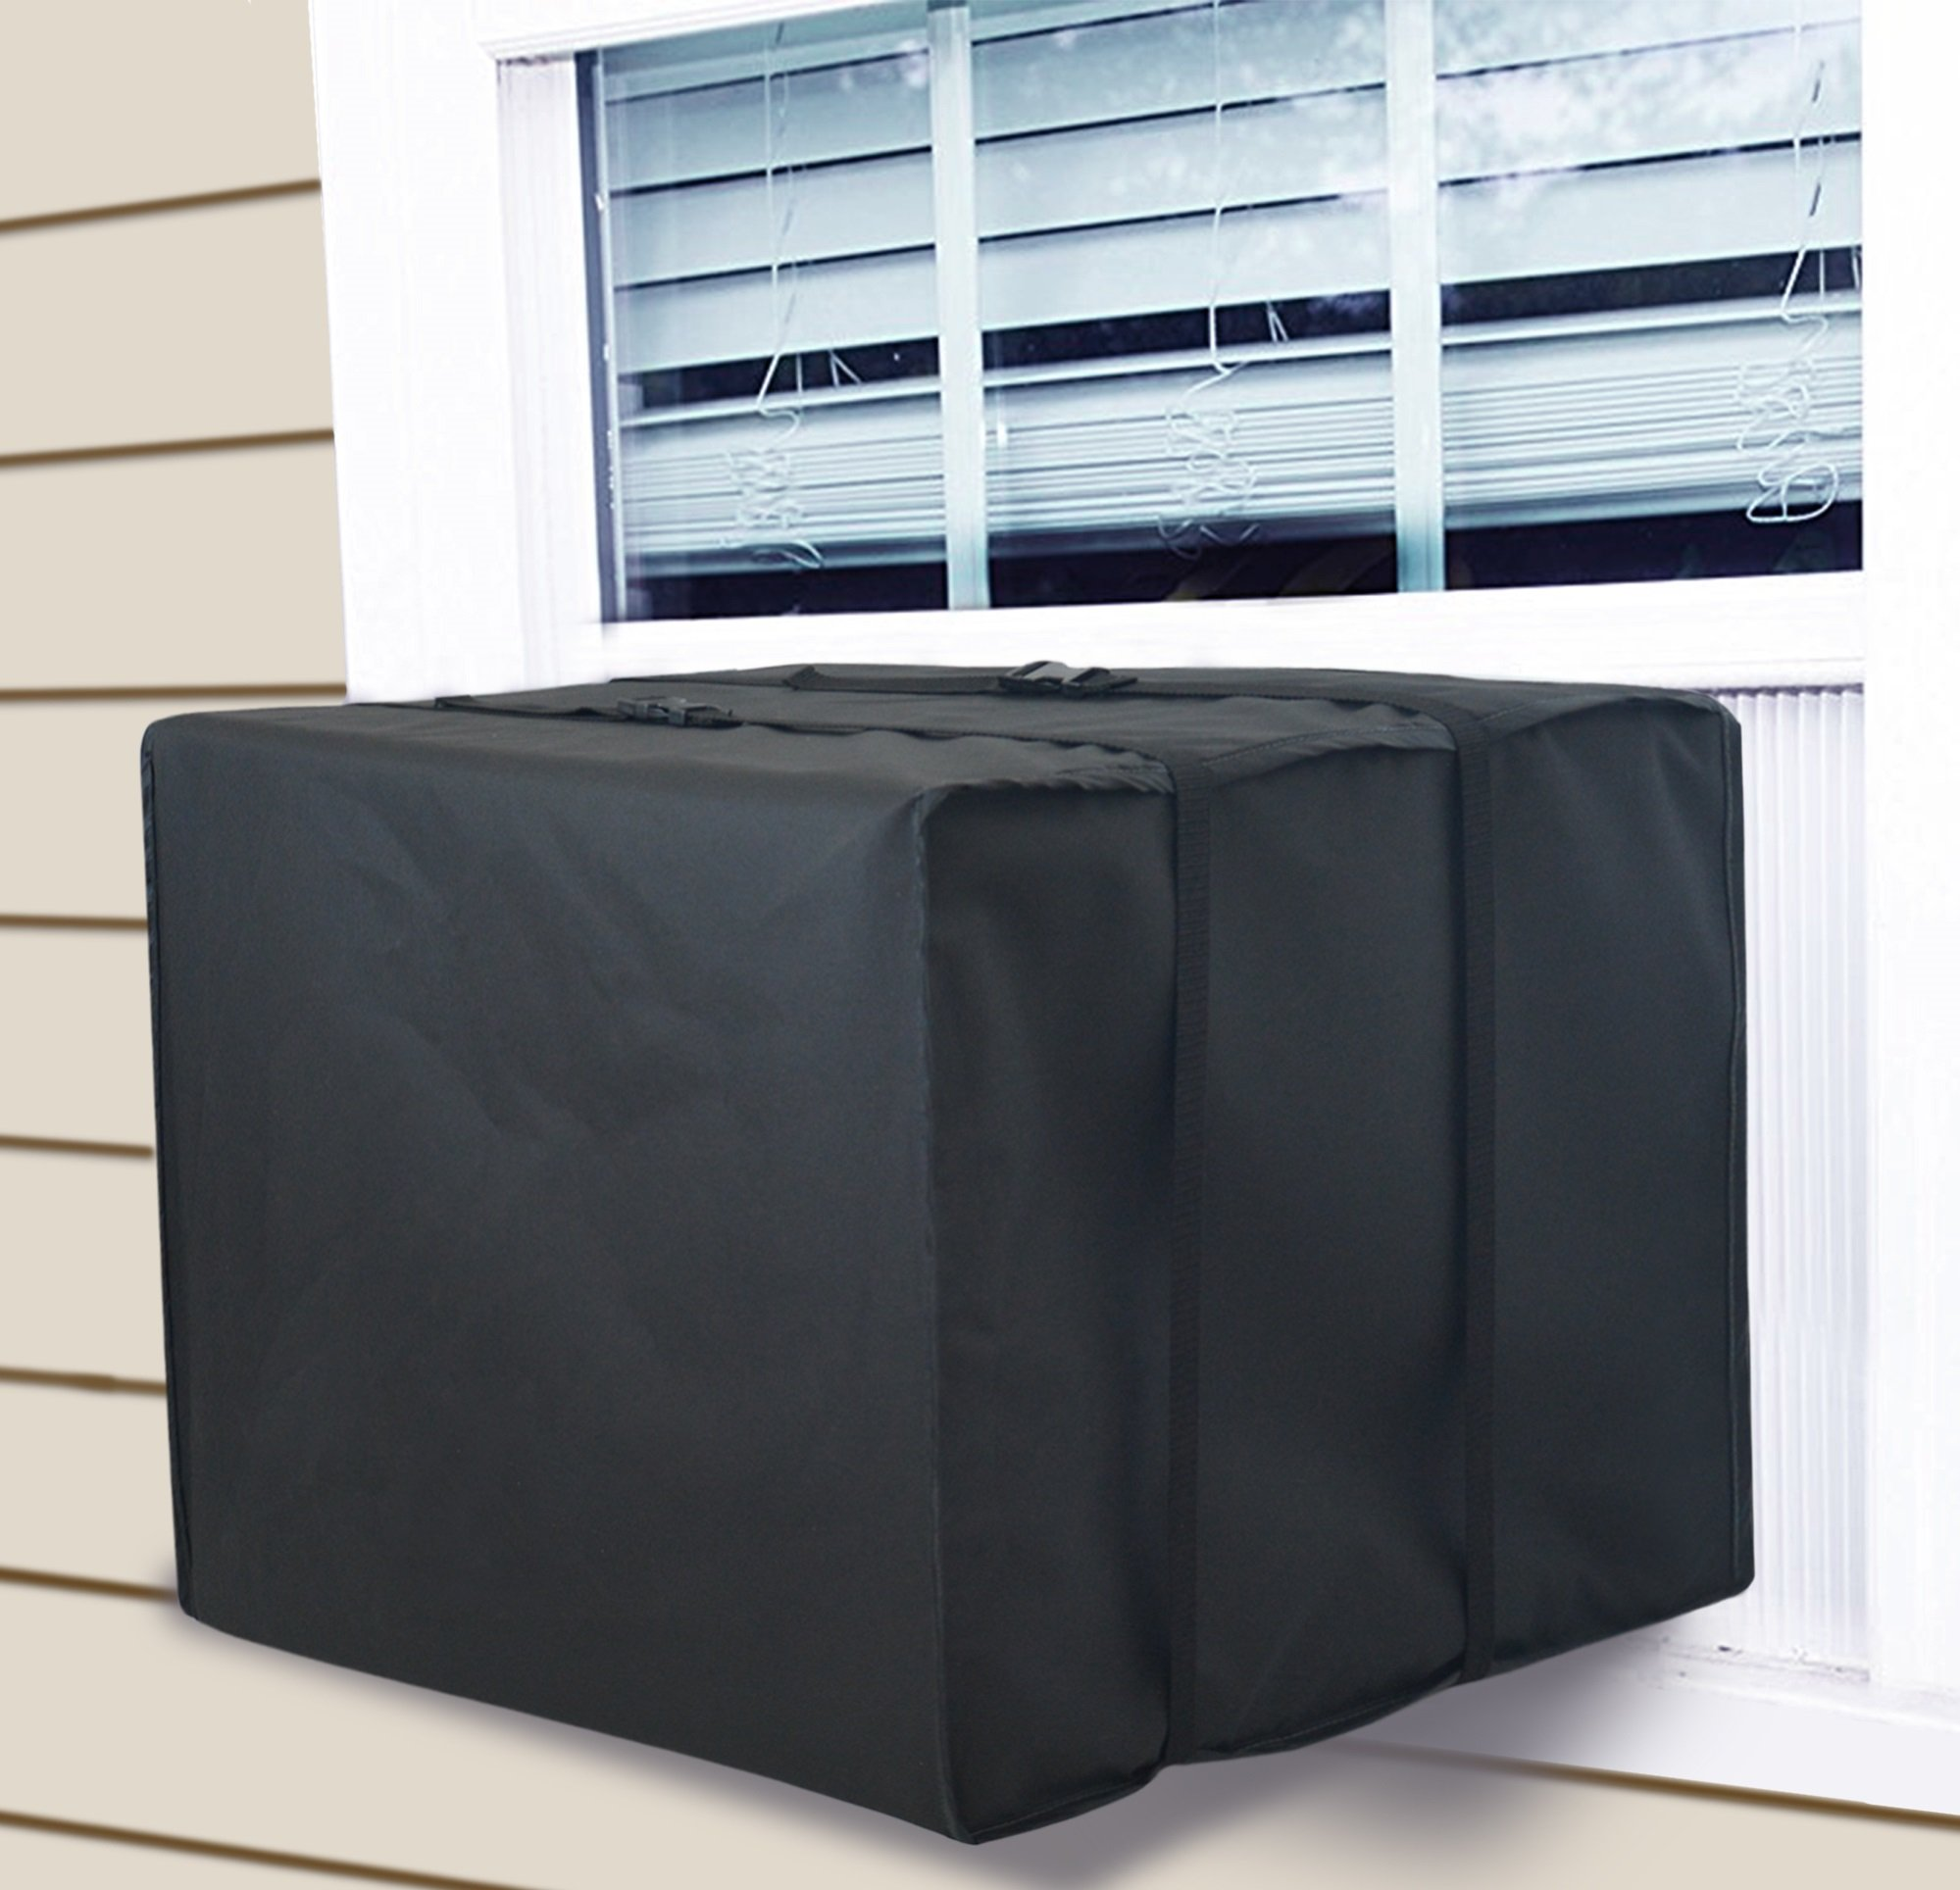 Foozet Window Air Conditioner Cover Large